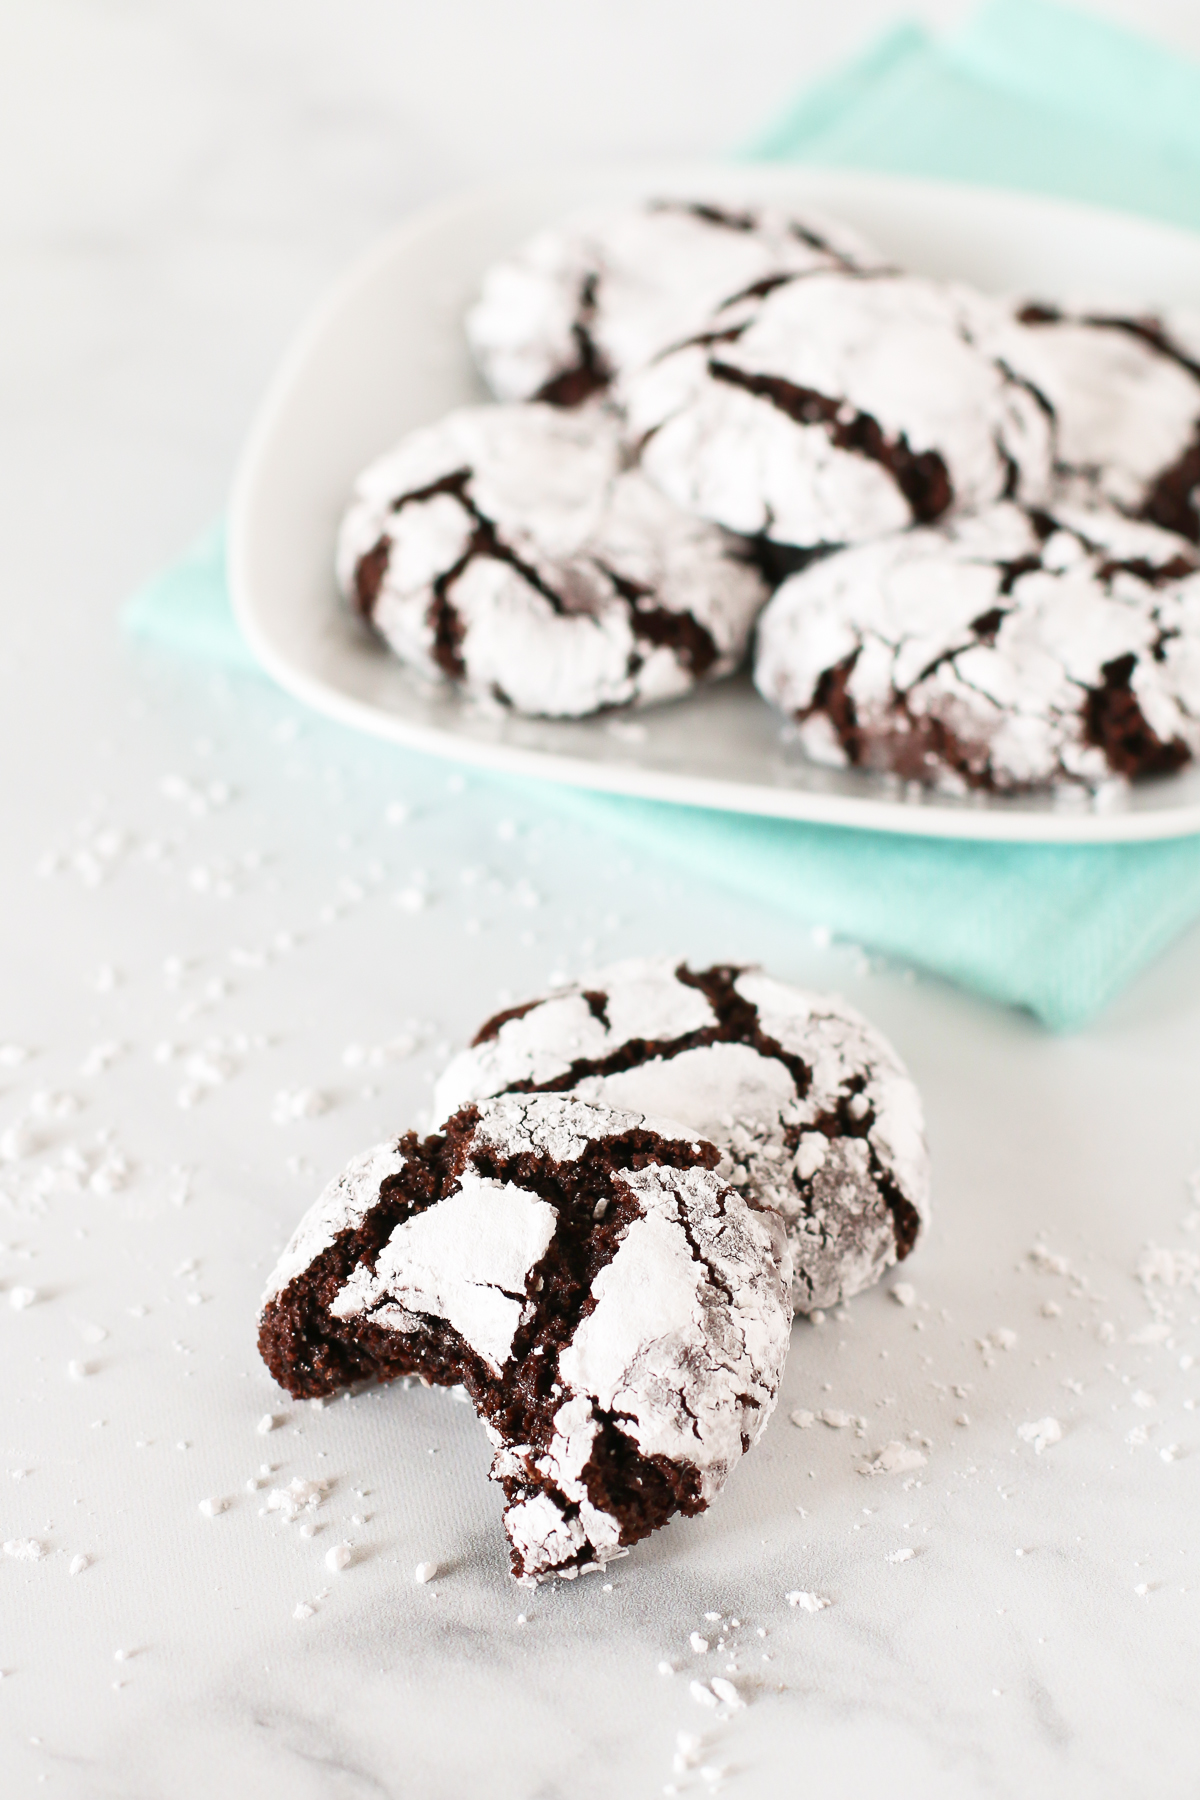 Gluten Free Vegan Chocolate Crinkle Cookies. The classic chocolate cookie, coated in powdered sugar and oh so fudgy.